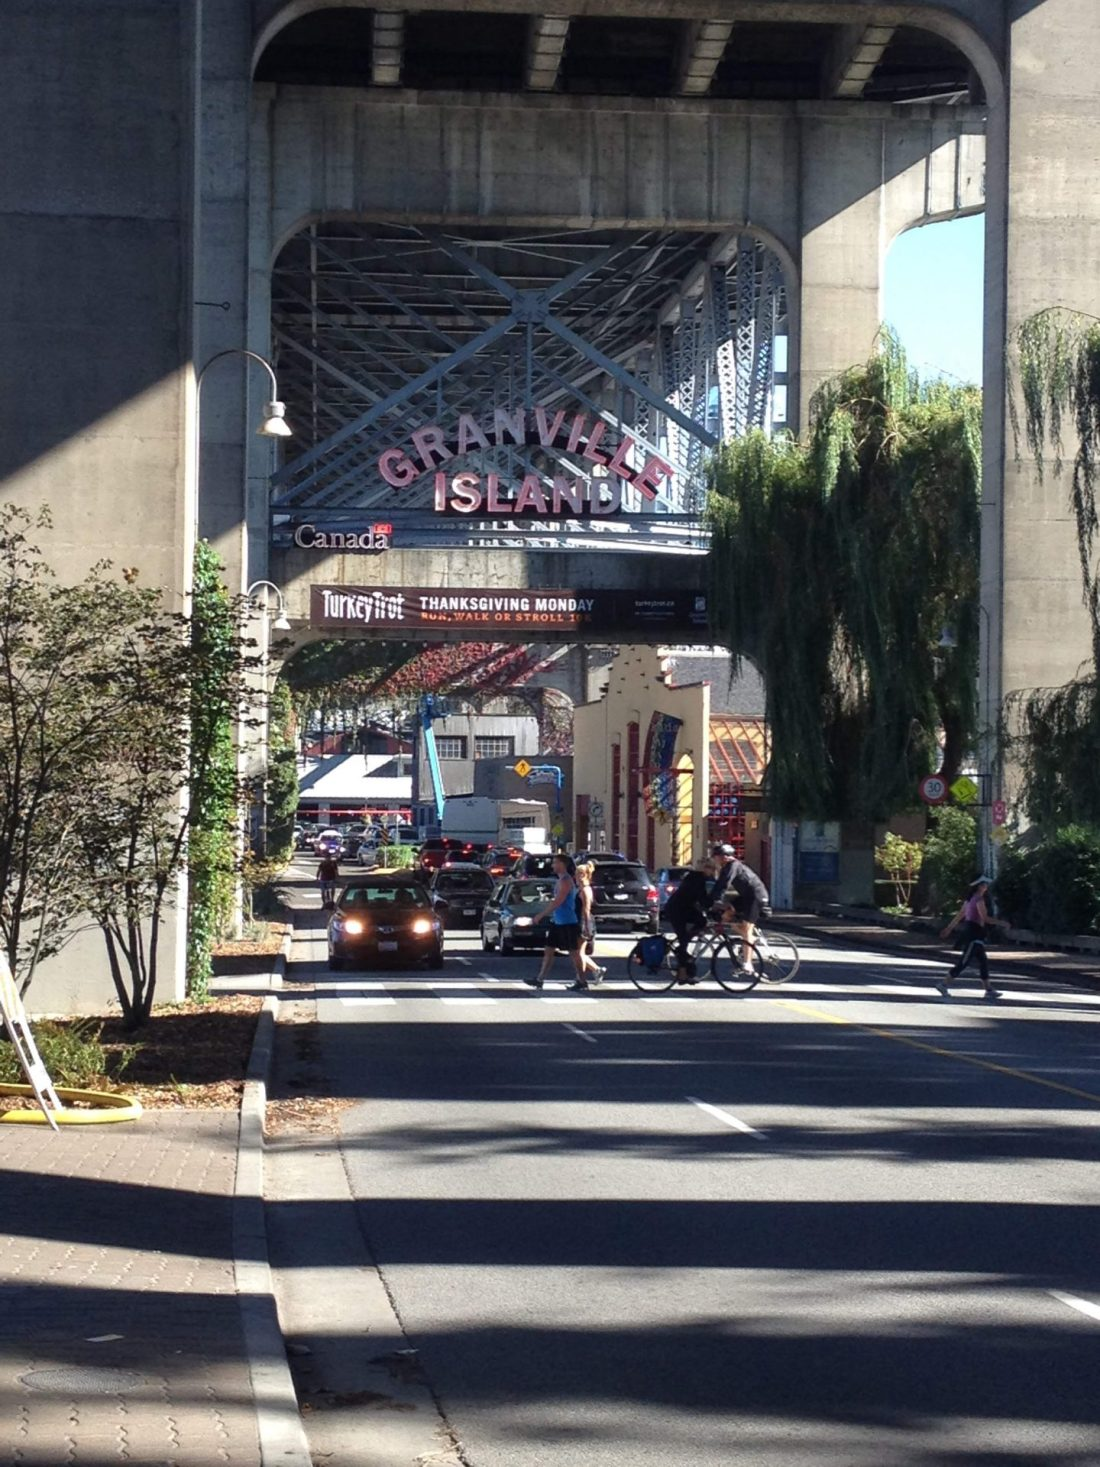 Entrance to Granville Island, Vancouver